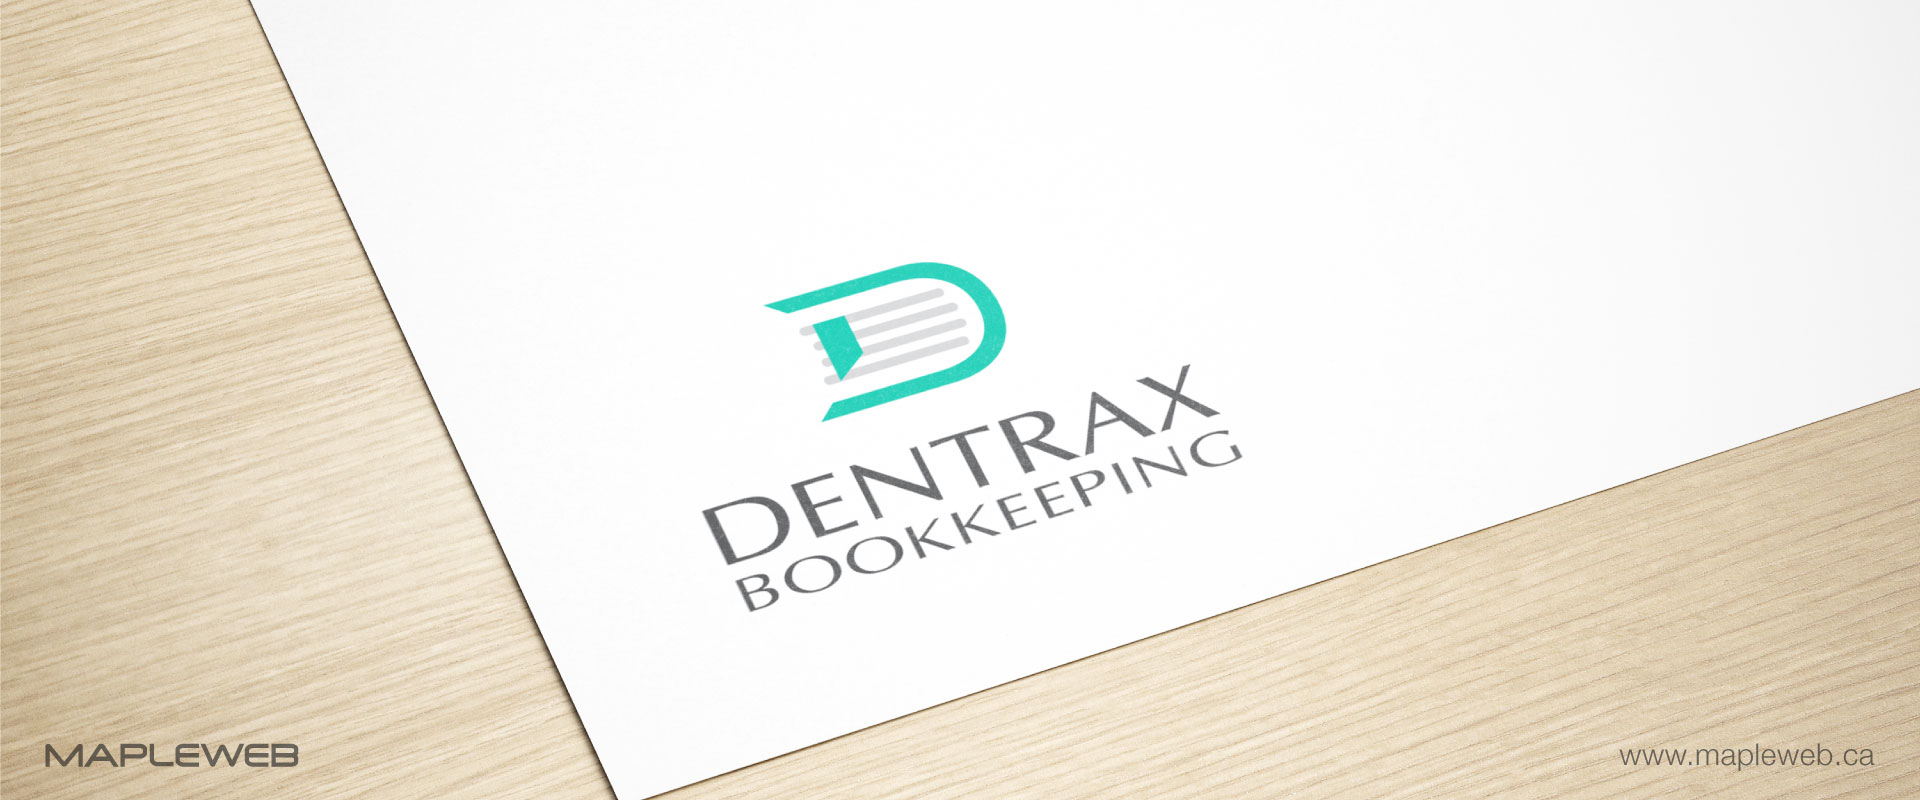 dentraxbookkeeping-brand-logo-design-by-mapleweb-vancouver-canada-paper-mock